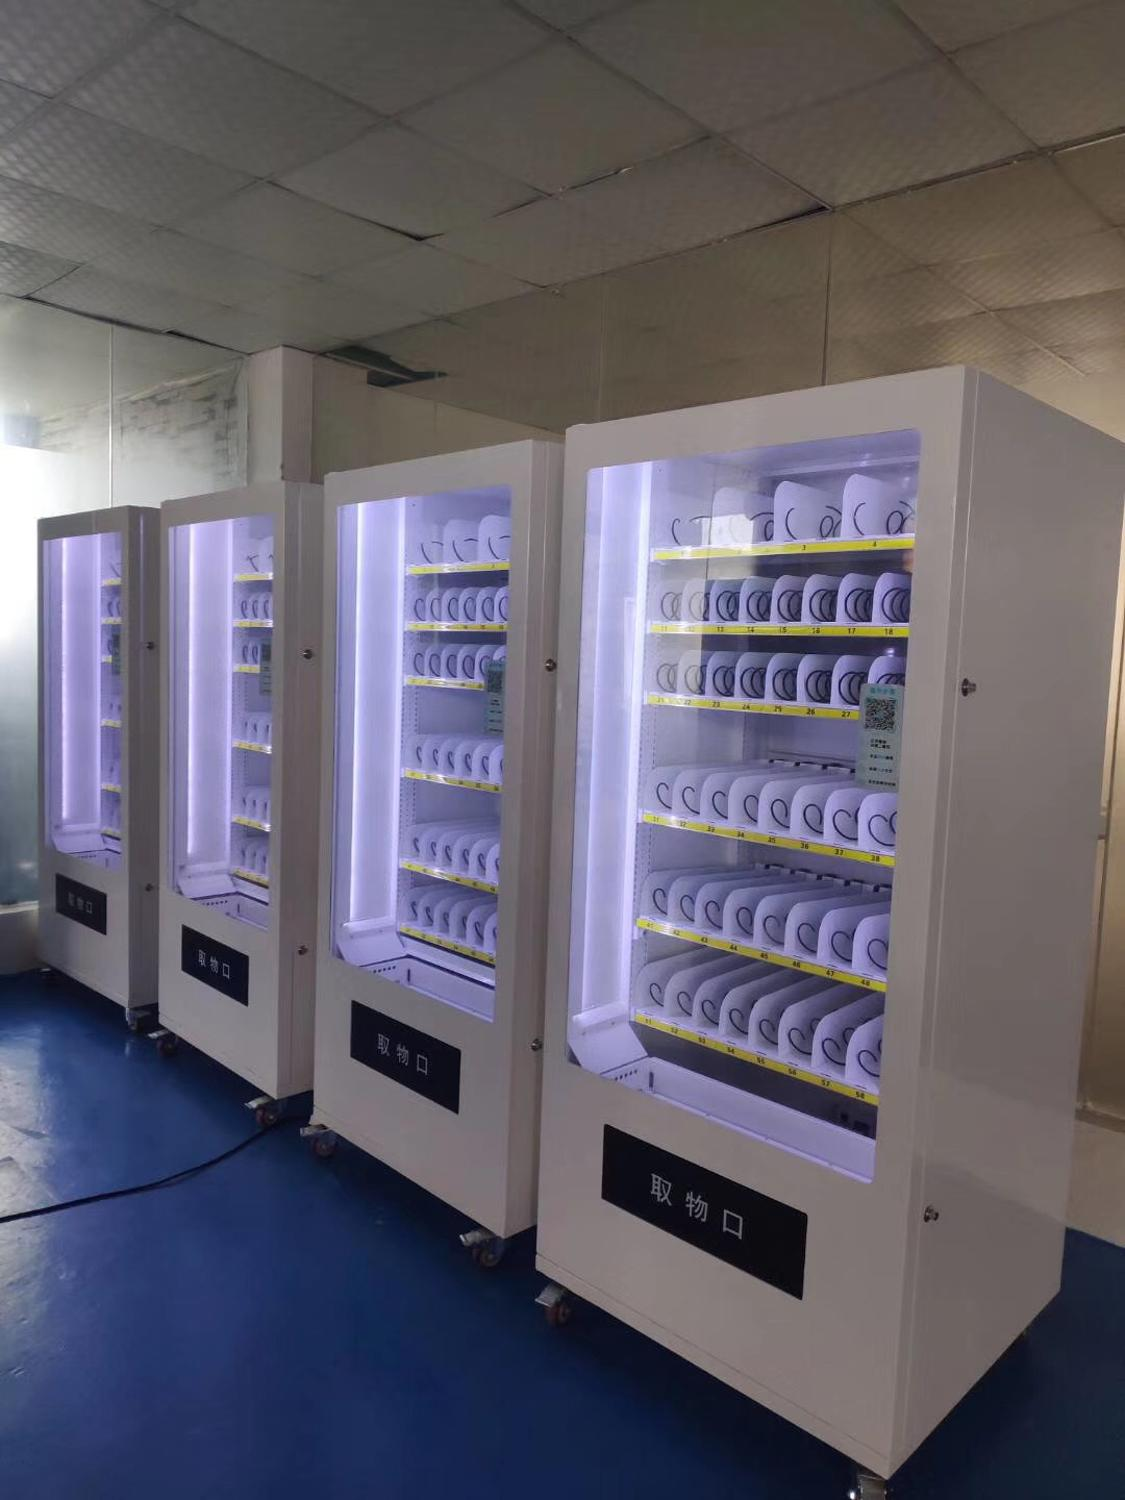 Bill, Coin, Cashless IC Card Wechat Alipay Payment Self Service Vending Machine